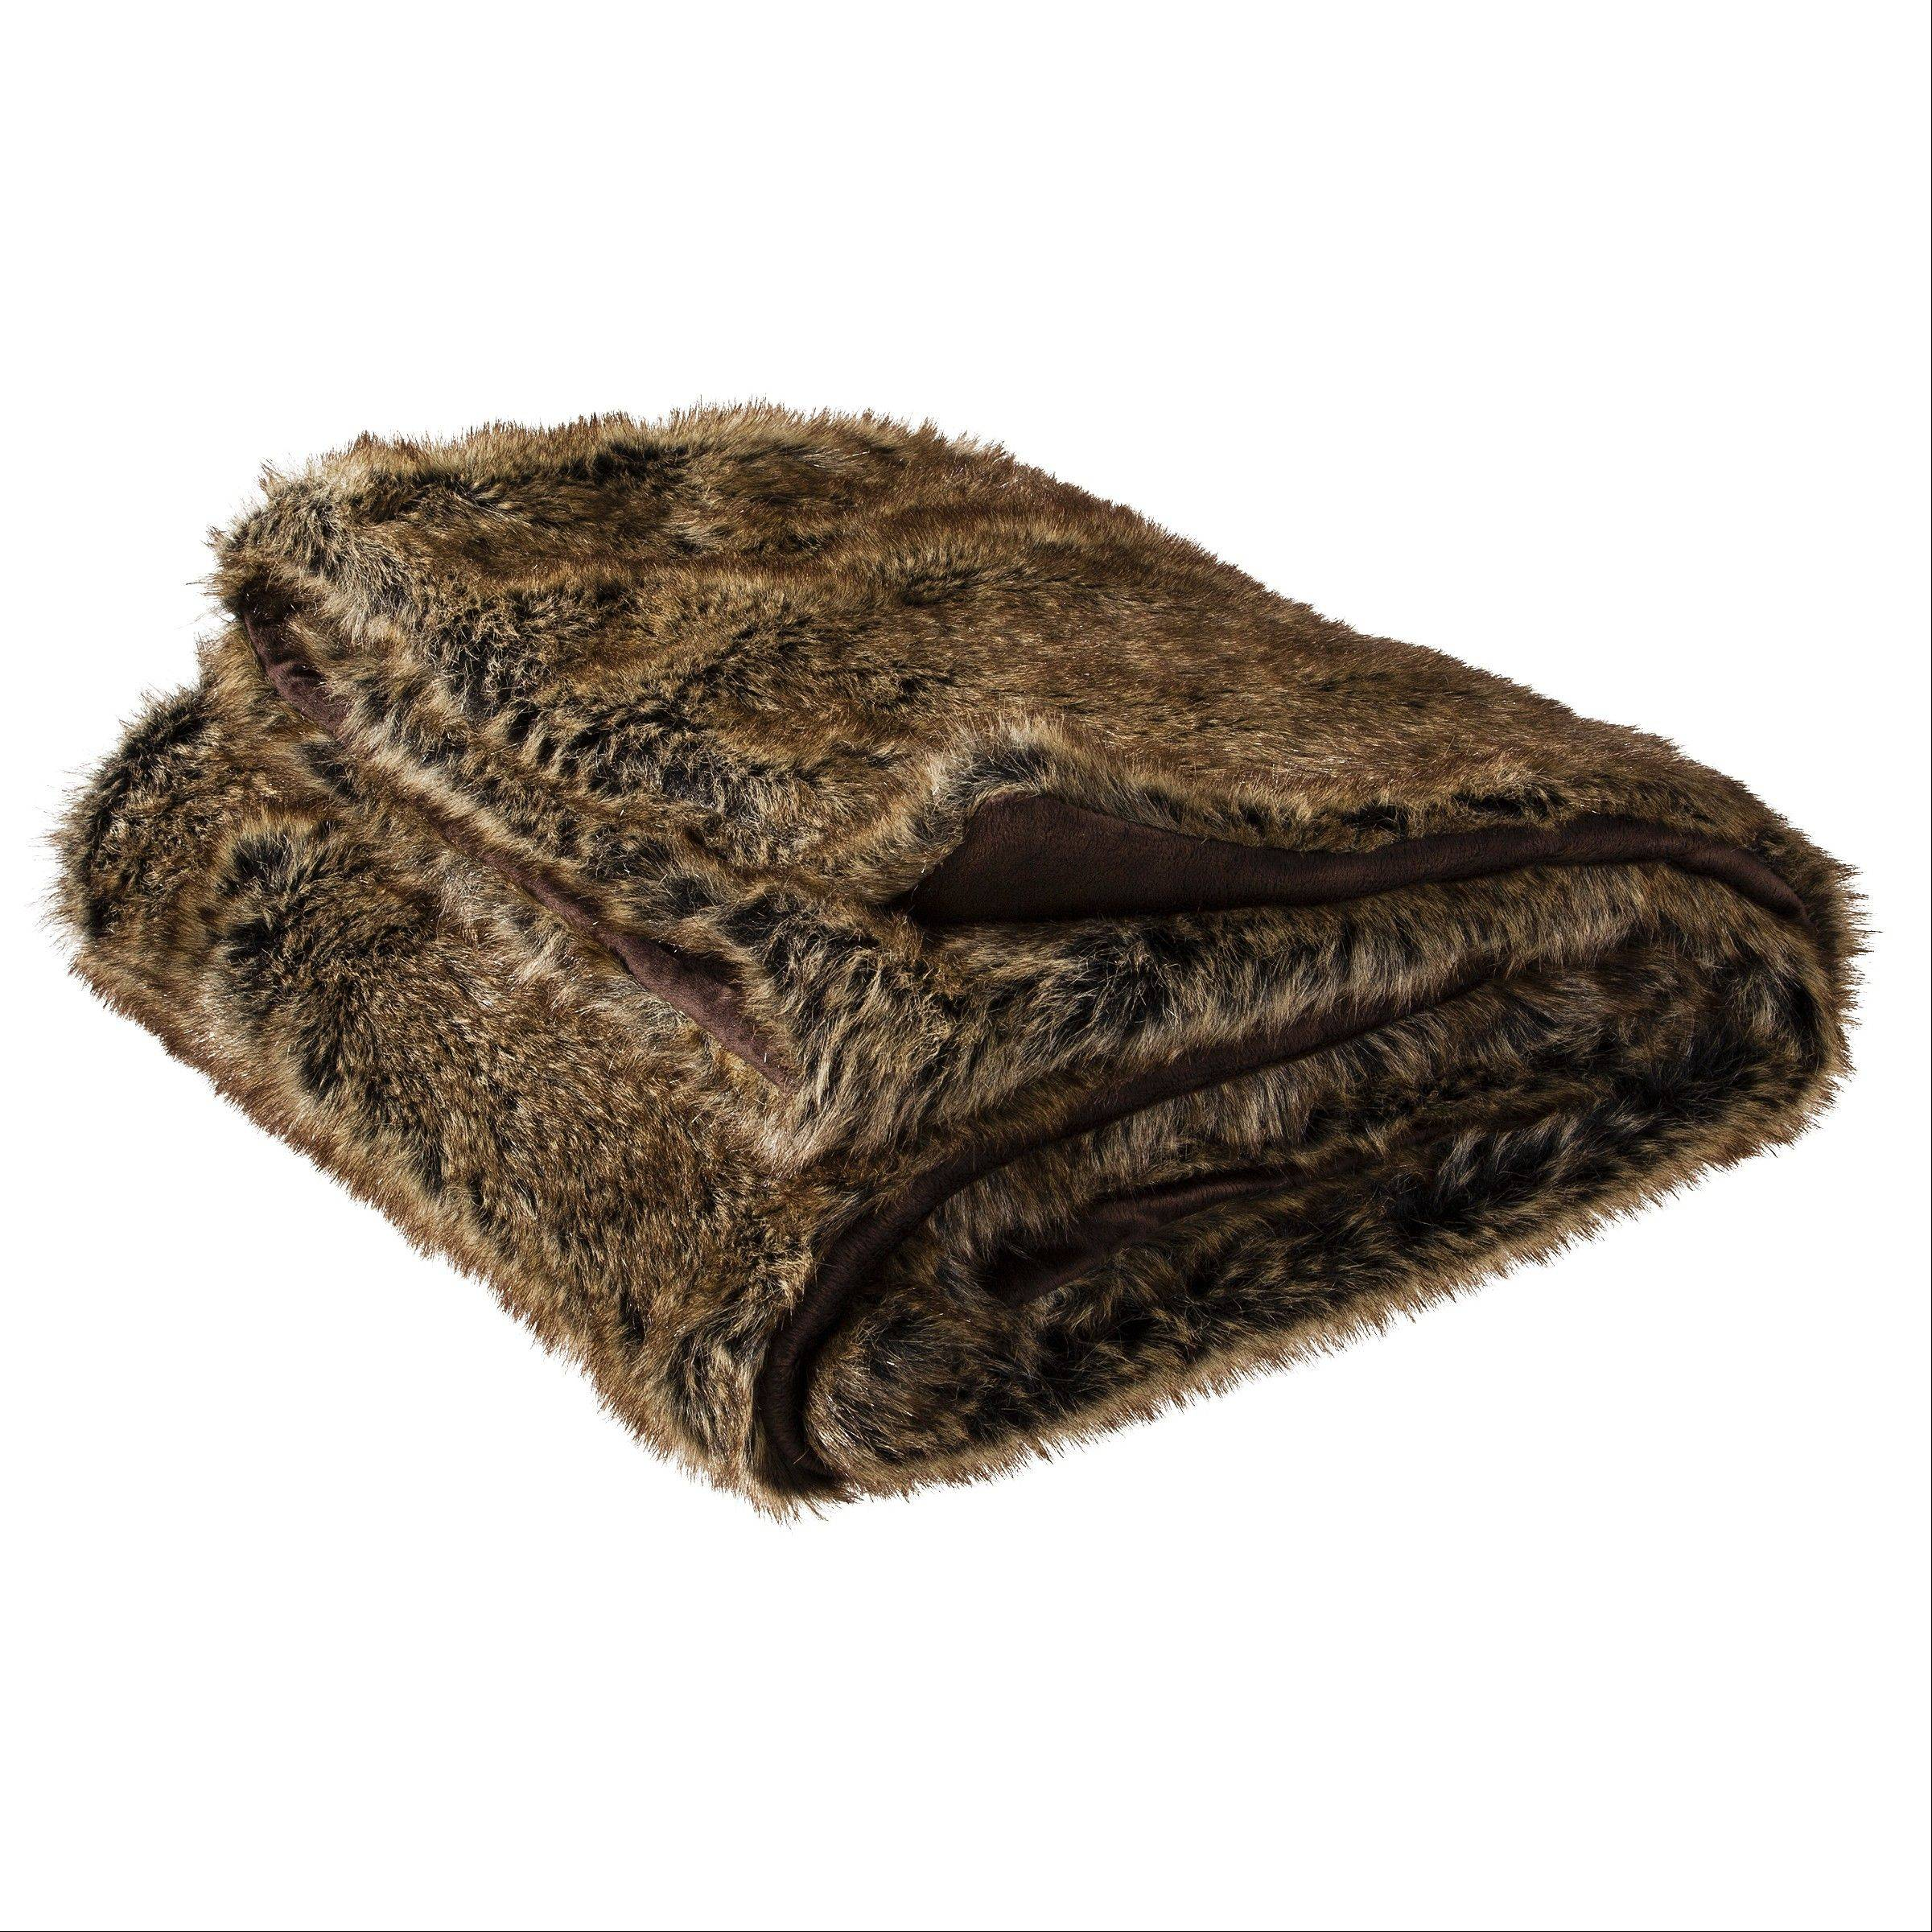 This image provided by Target shows the Threshold Faux Fur Throw in Brown. From faux fur coats to 'vegan leather' accents, faux fur gifts are trending, in 2013.